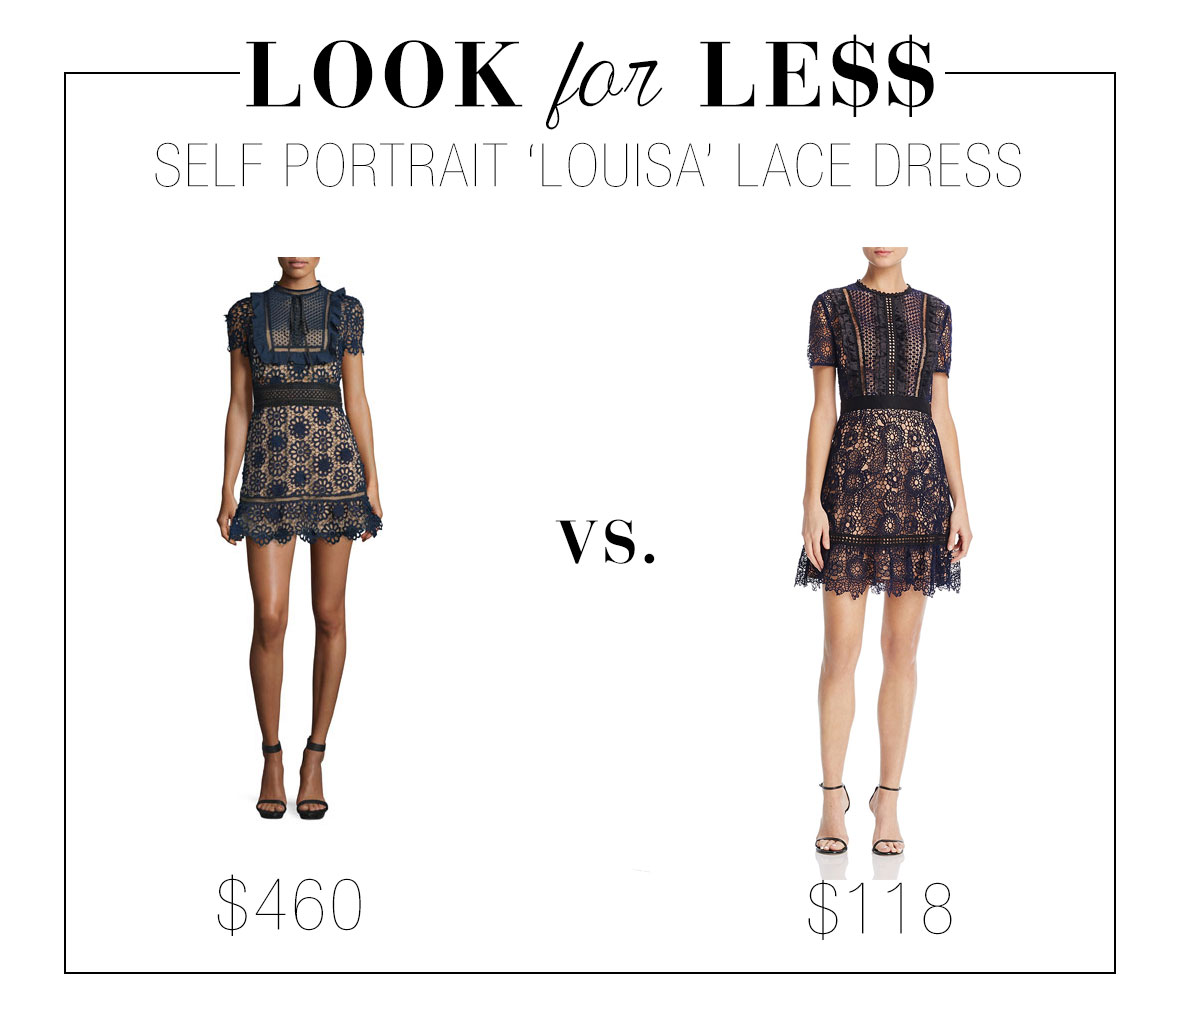 Self Portrait lace dress look for less